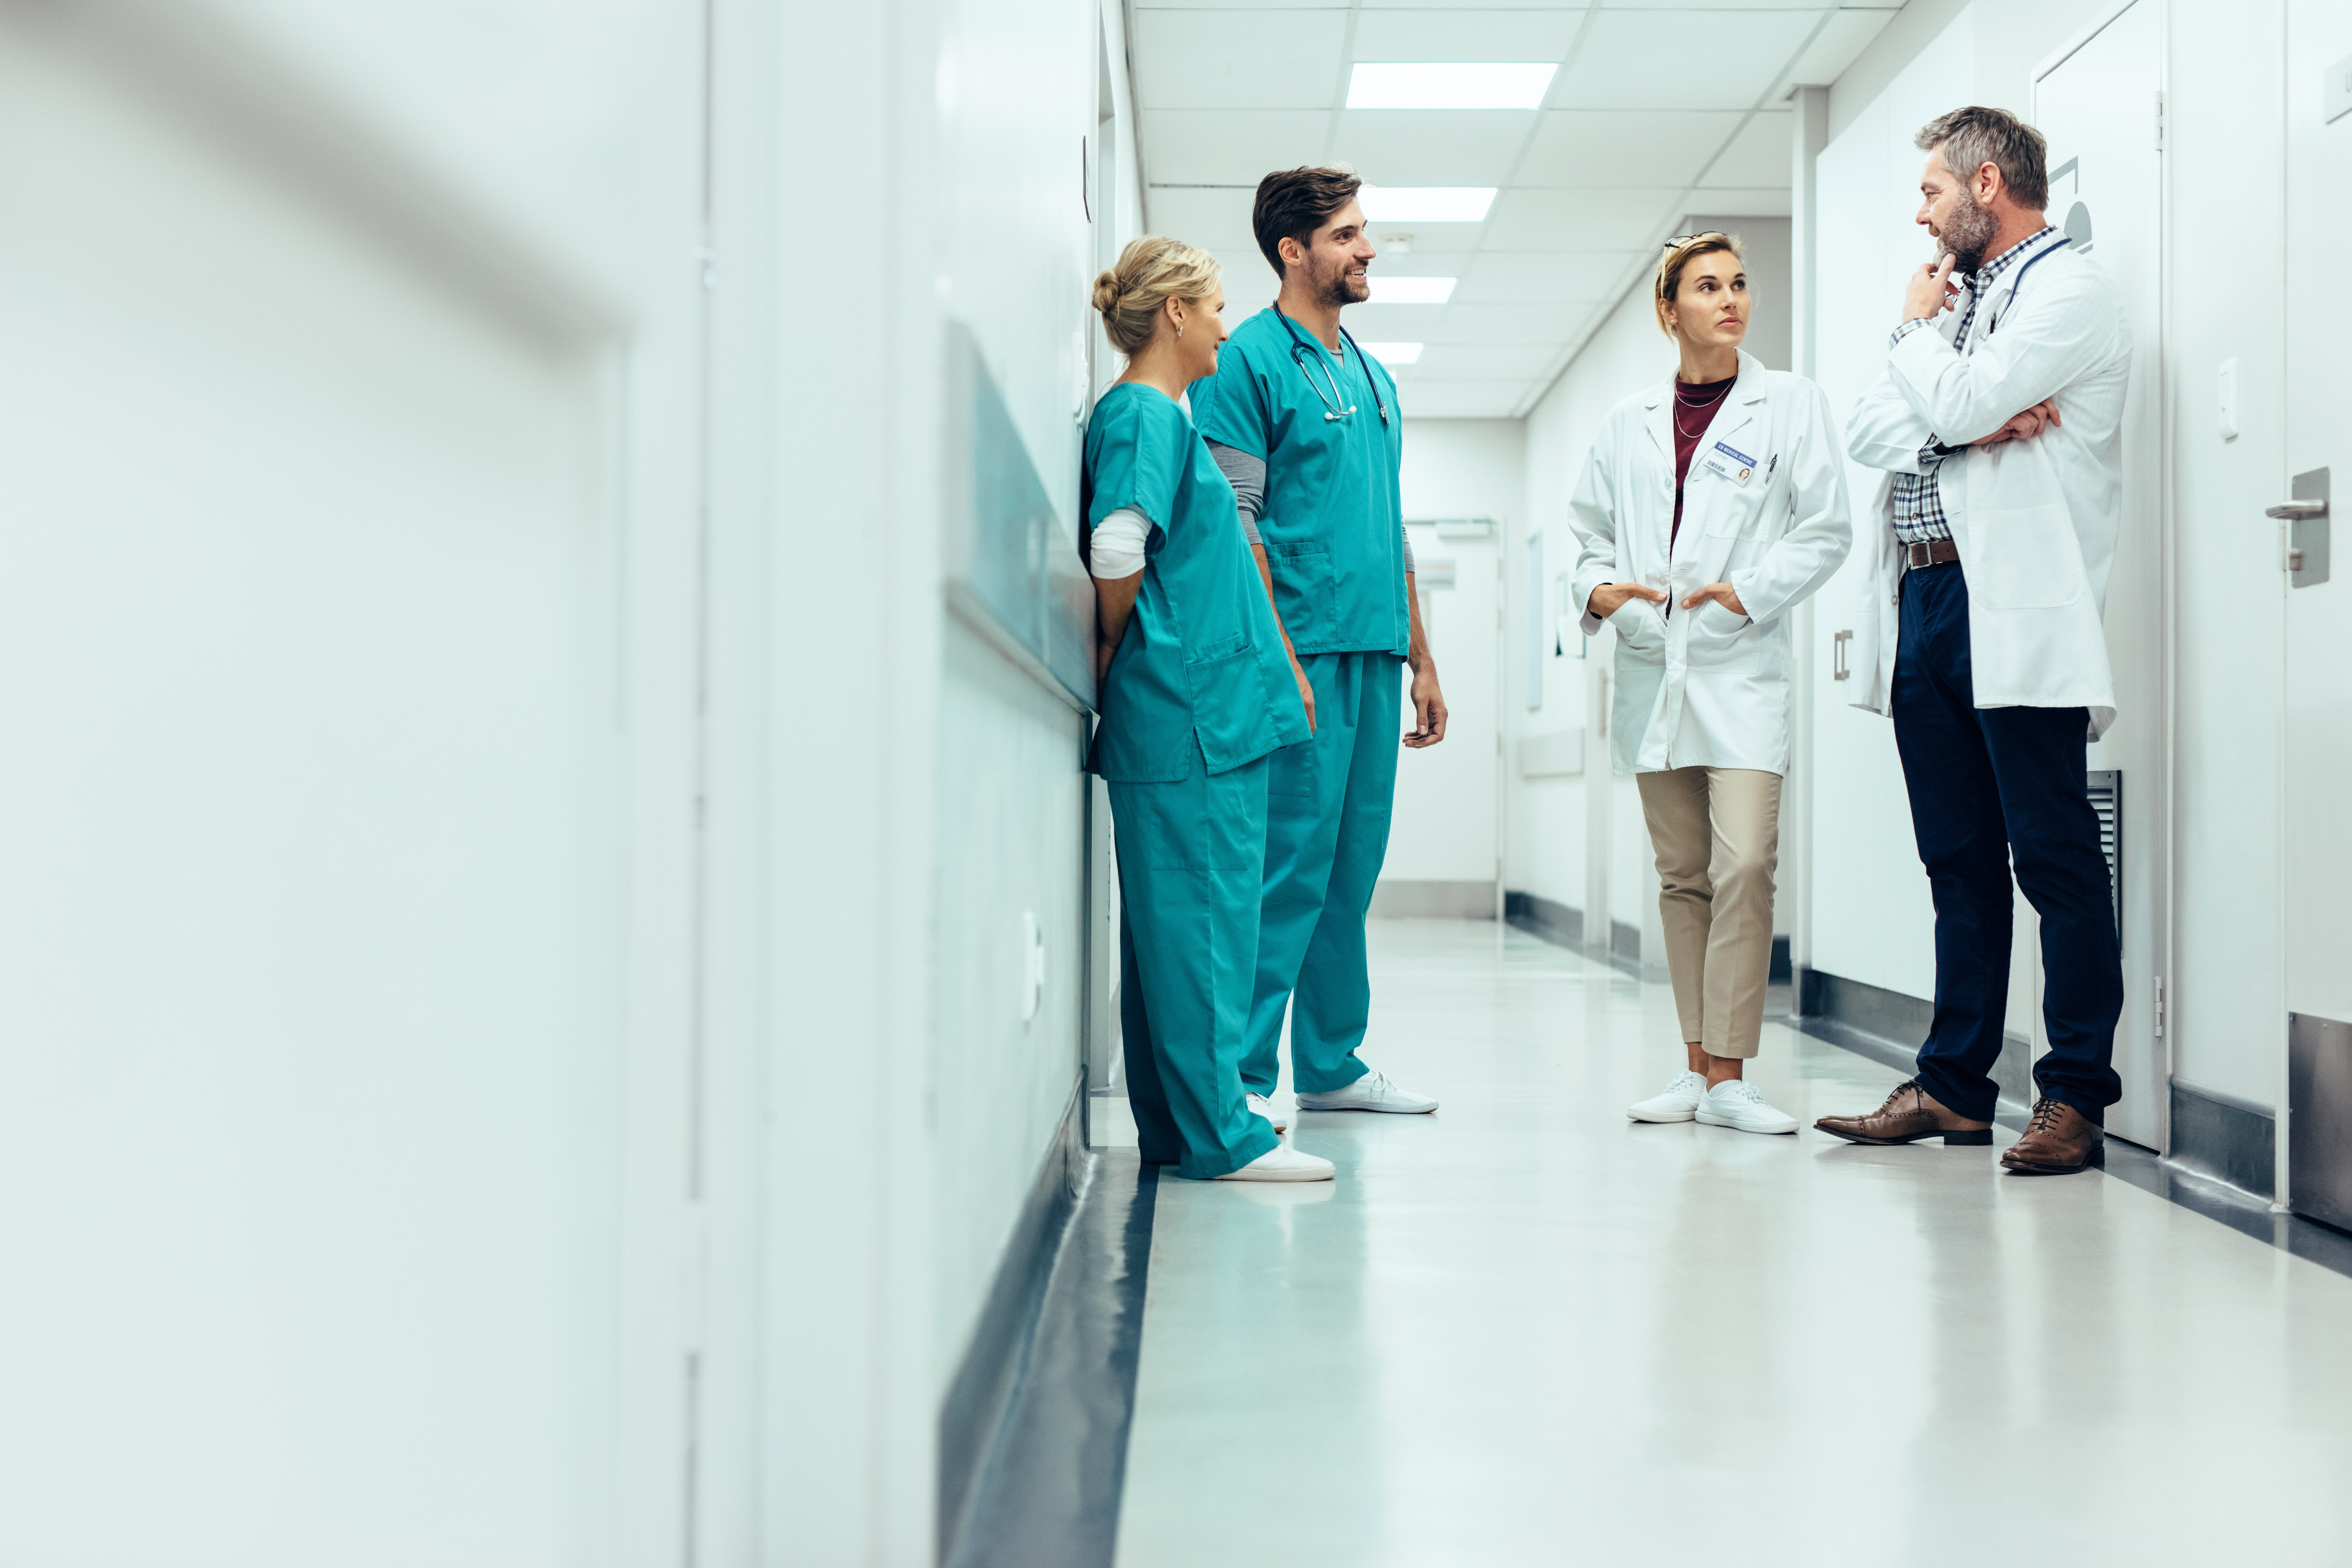 Doctors and nurses in a hospital | Photo: Shutterstock